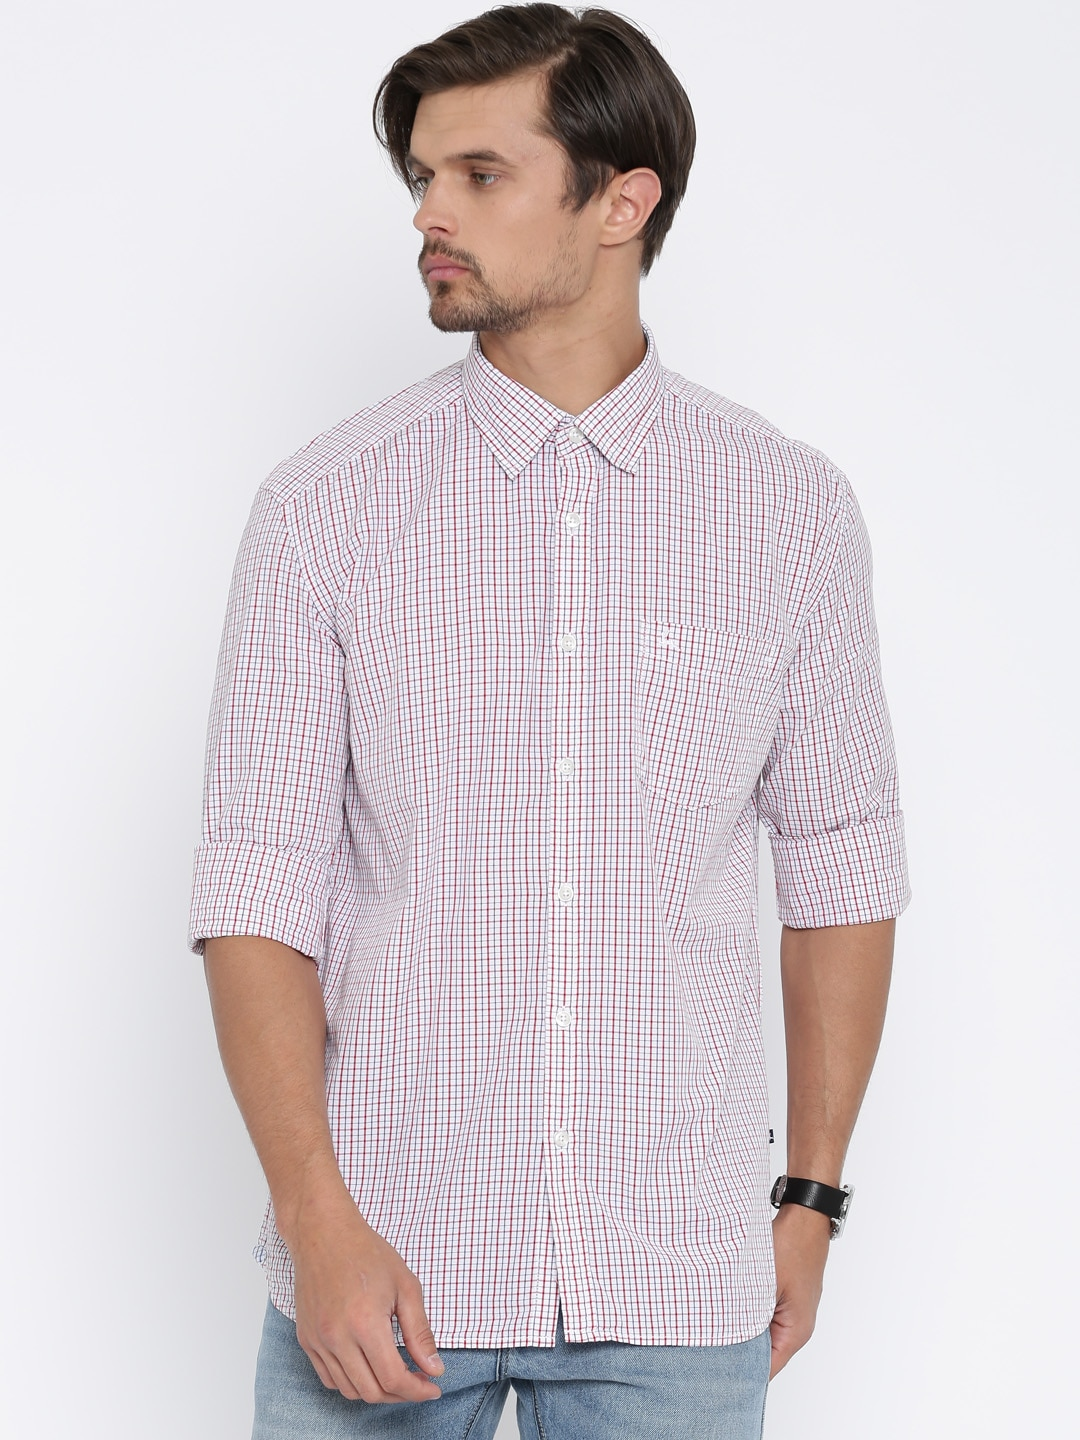 Parx White & Red Slim Fit Checked Casual Shirt image